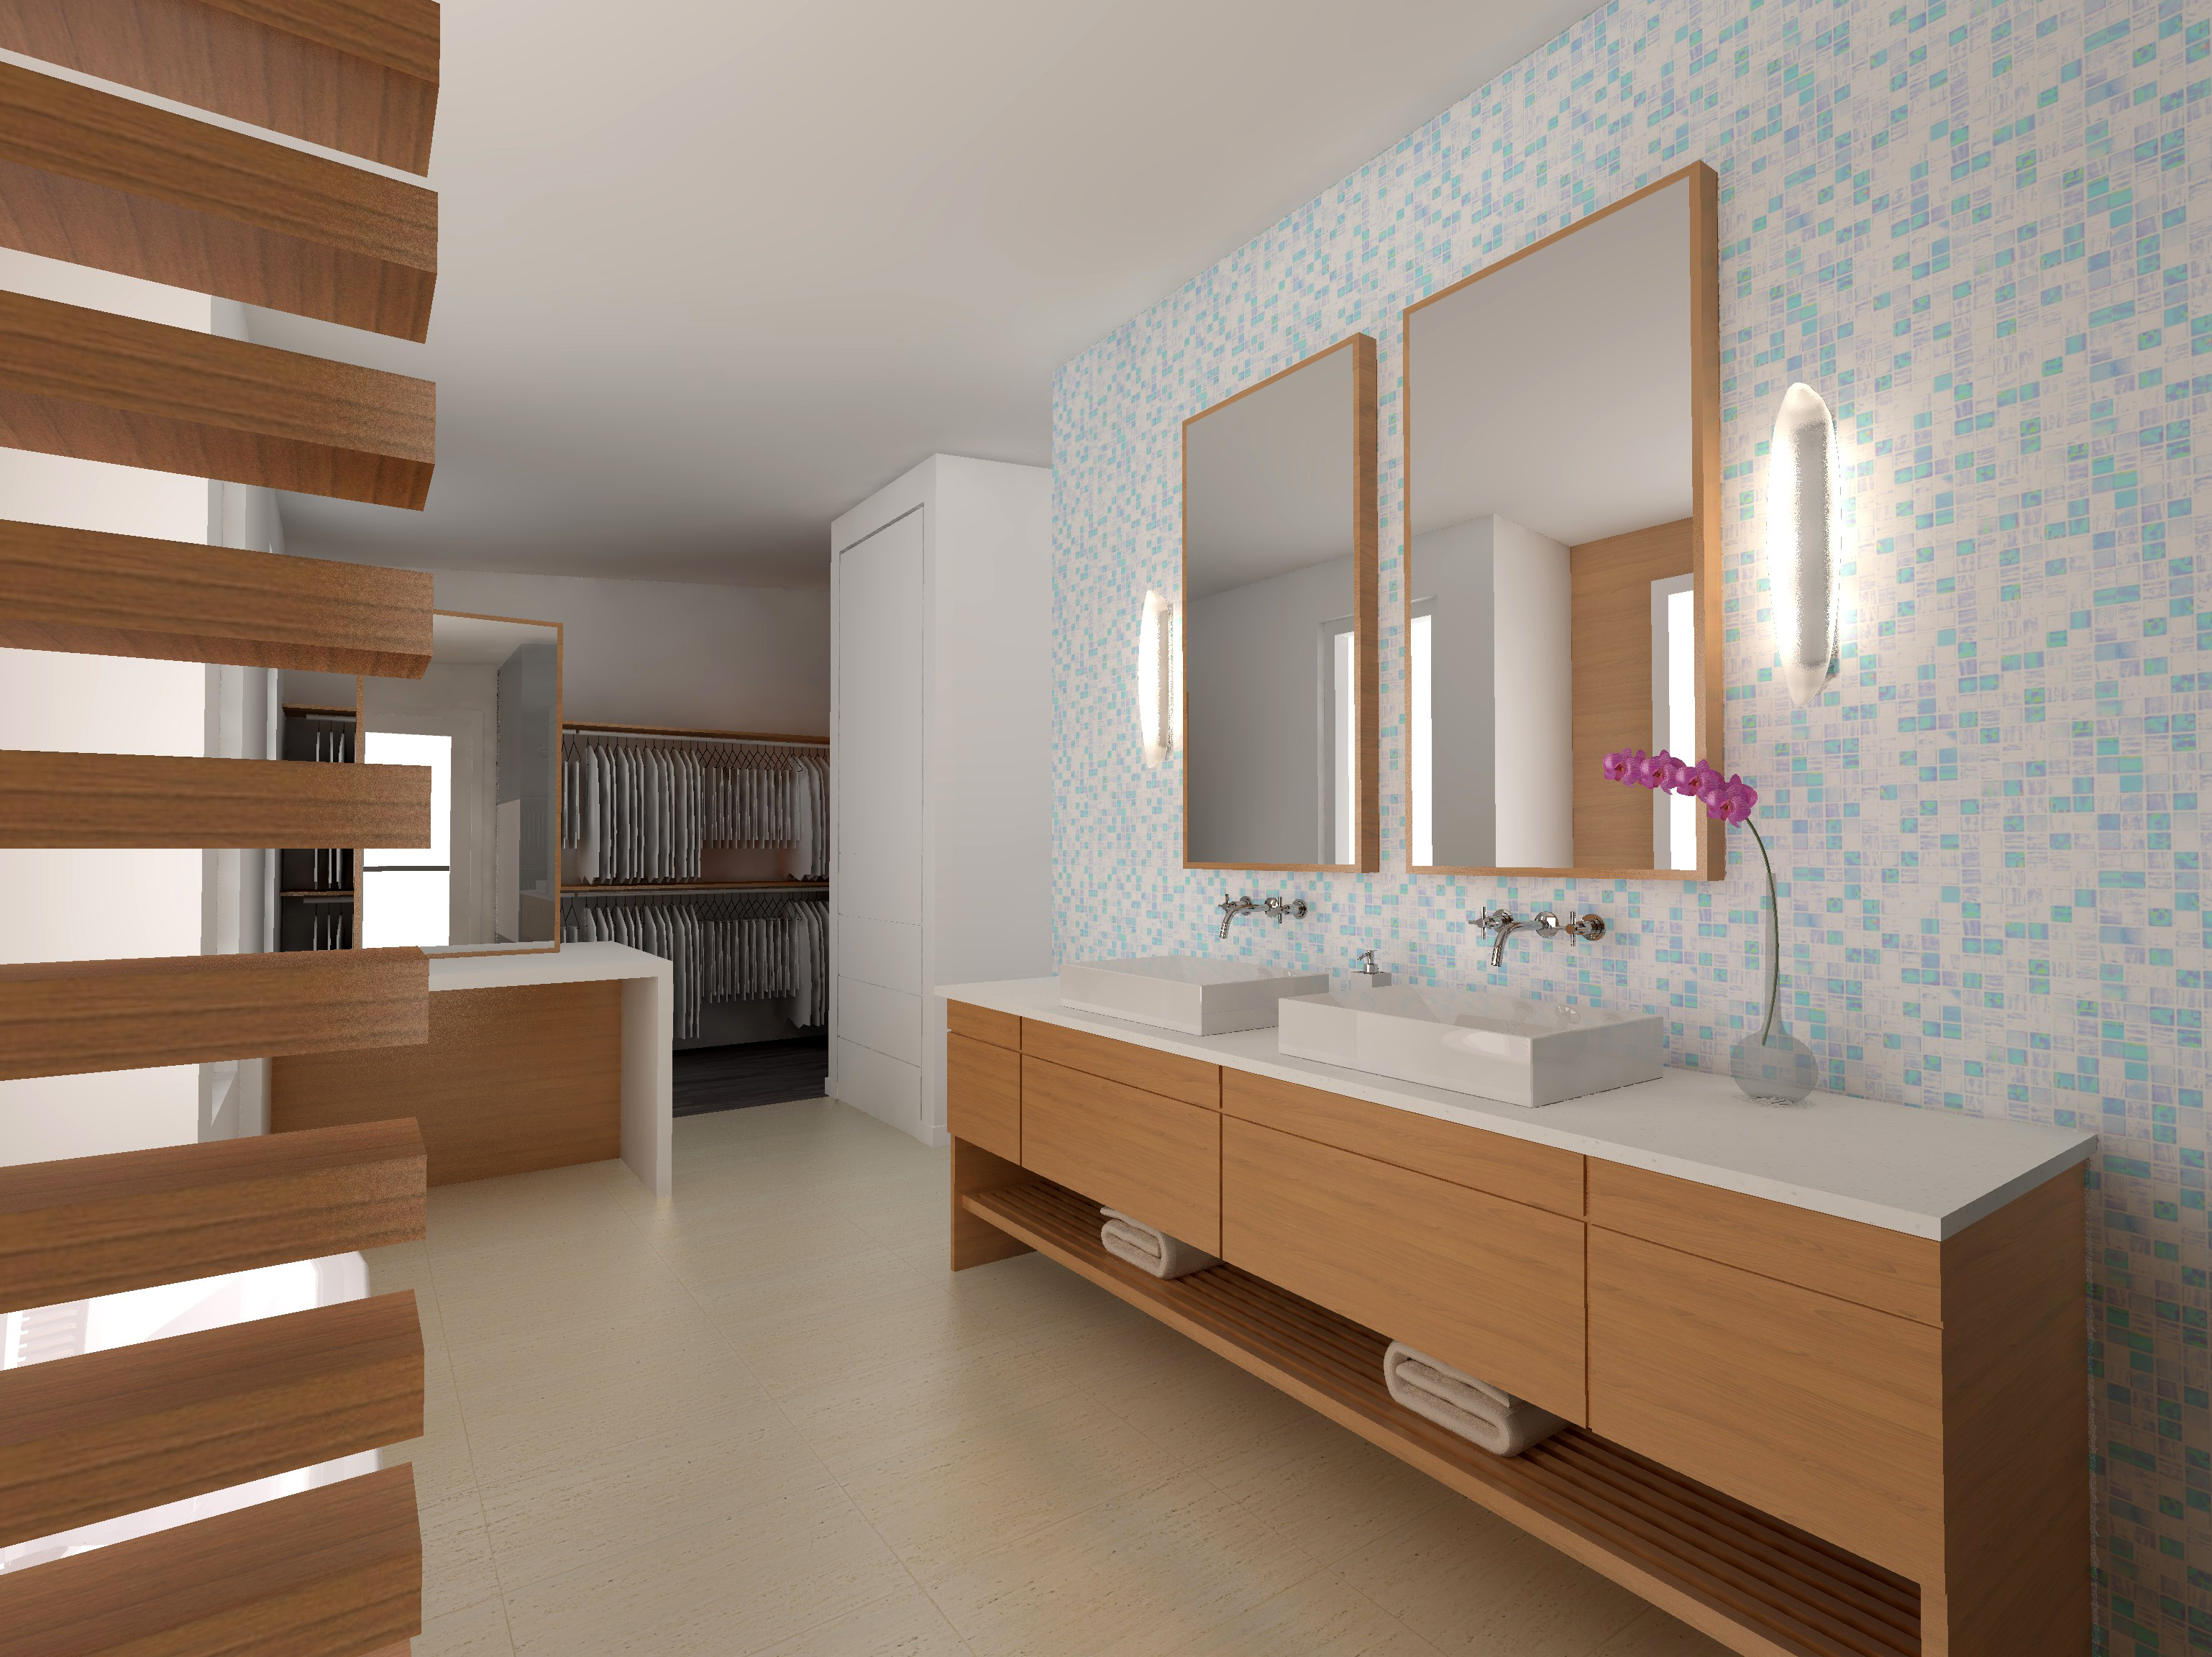 2013-11-04 Lo Residence - Ensuite R1 2013-11-04 22262400000